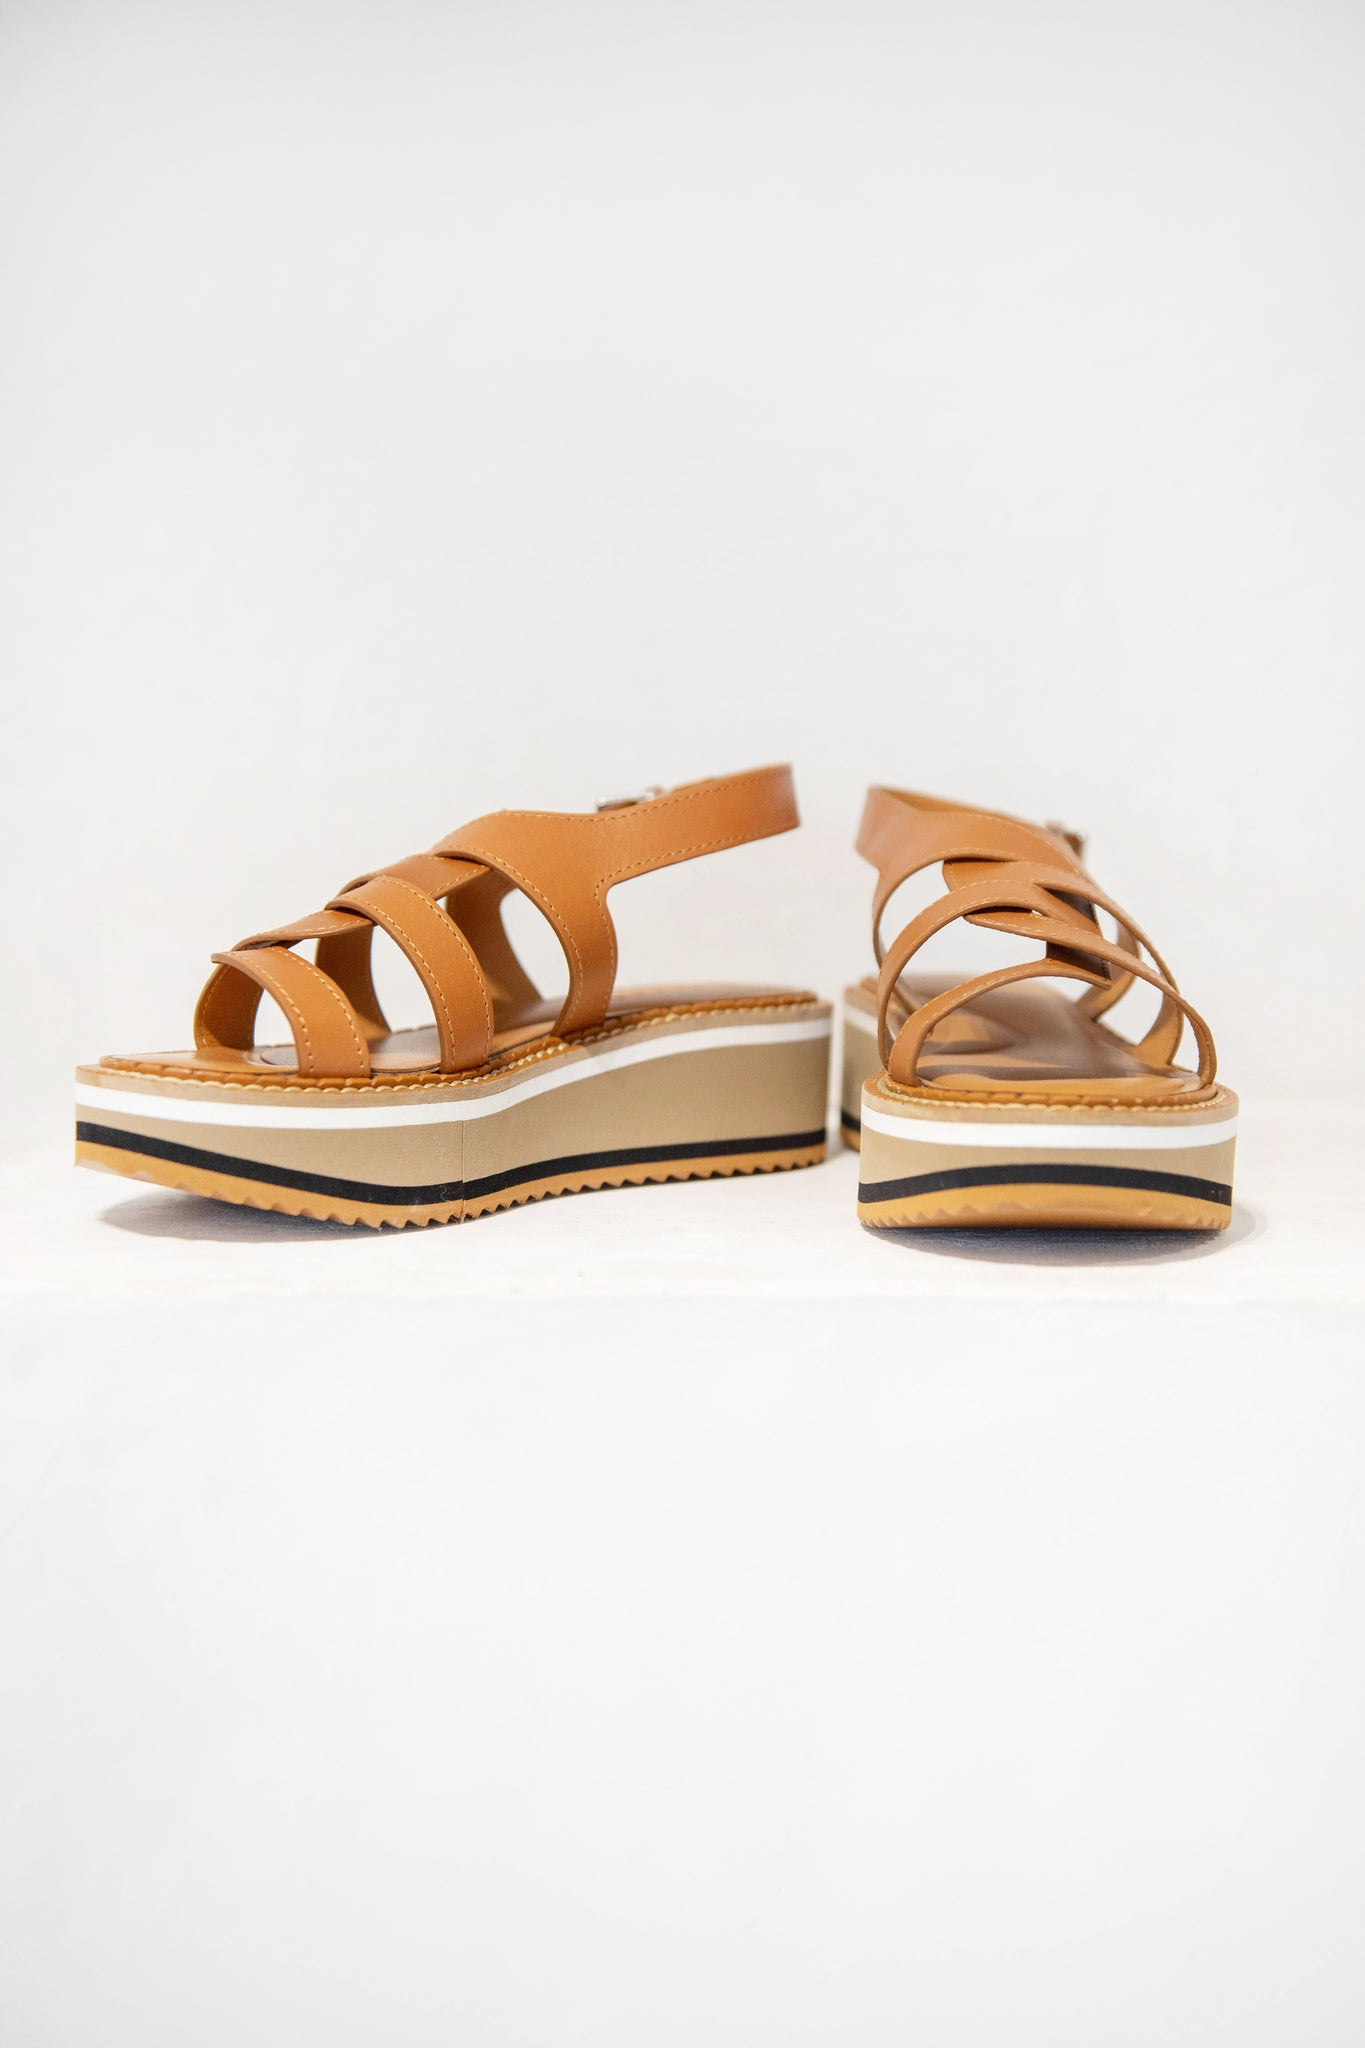 Robert Clergerie - FILOE platform sandal, ground